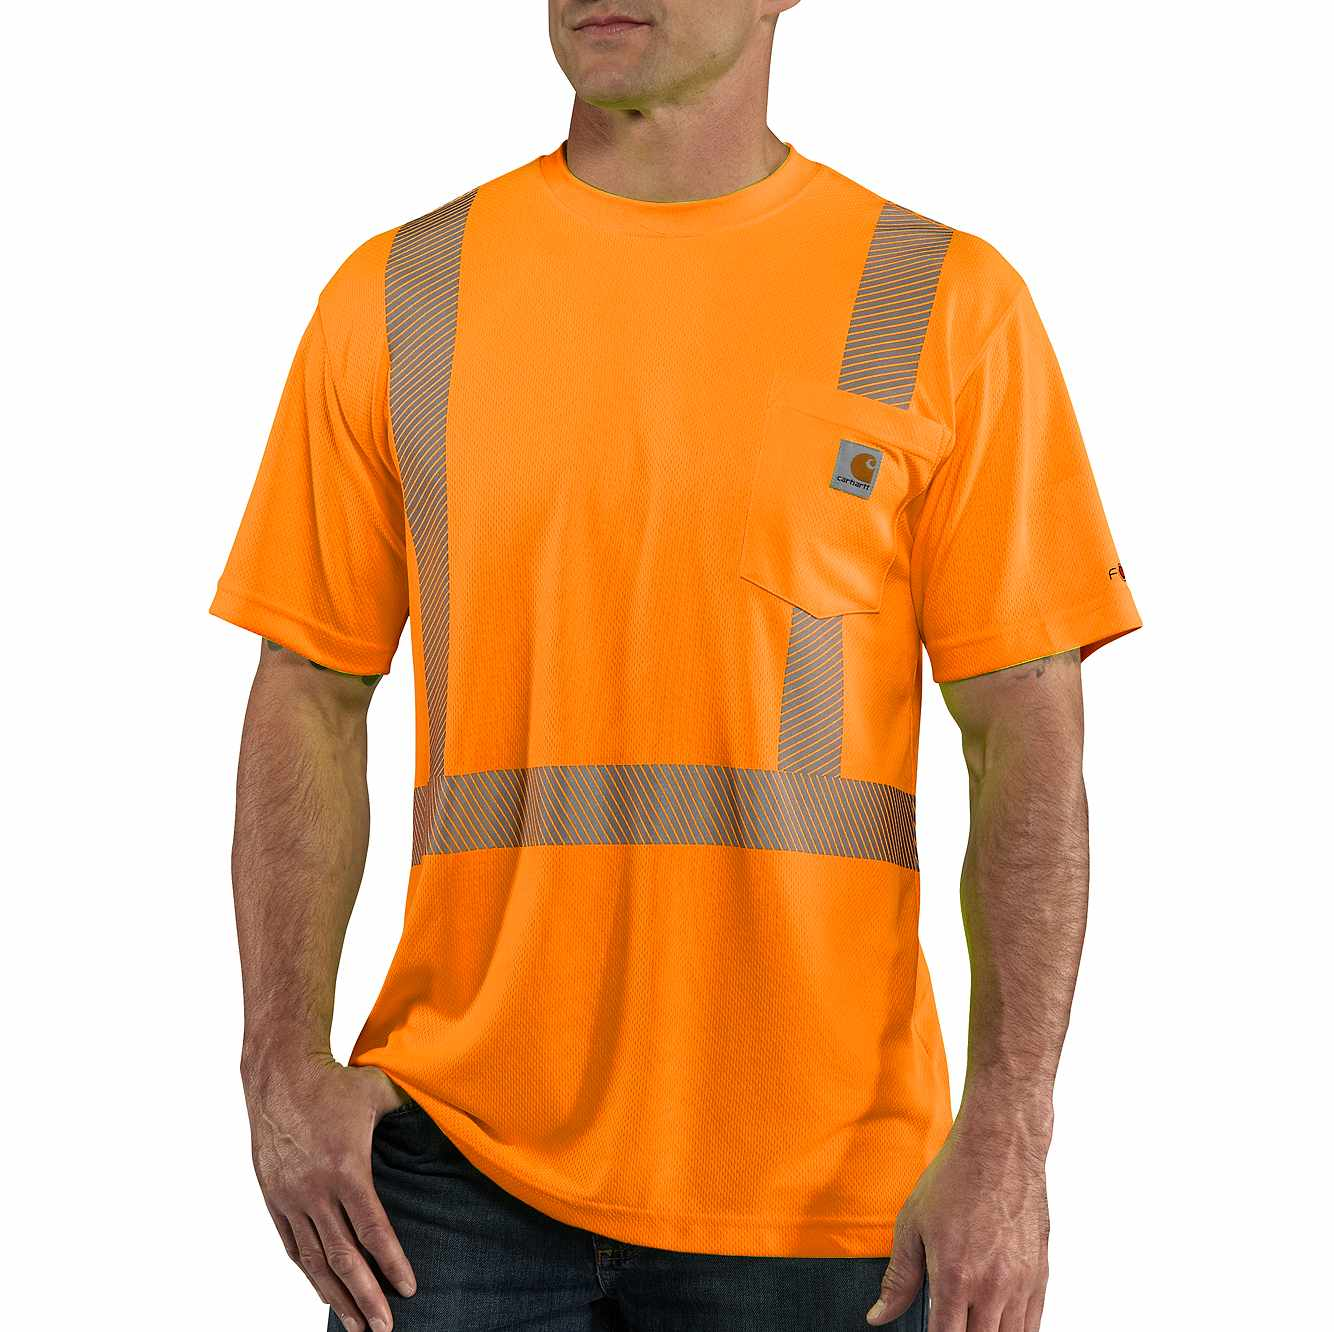 Picture of Carhartt Force® High-Visibility Short-Sleeve Class 2 T-Shirt in Brite Orange